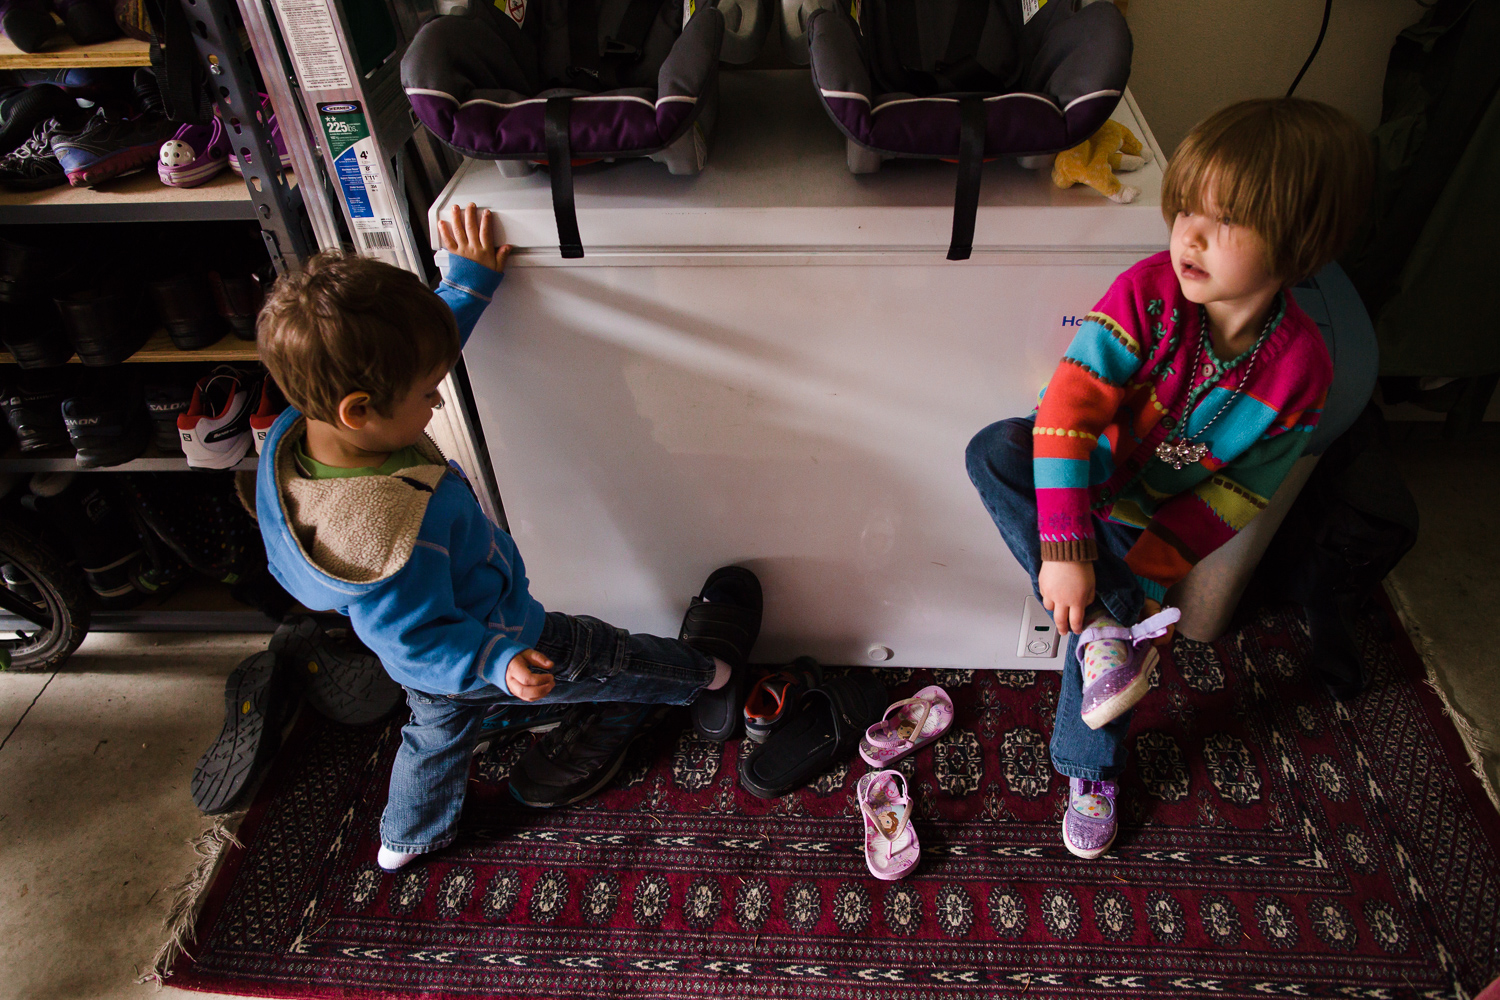 boy and girl putting on their shoes to go outside